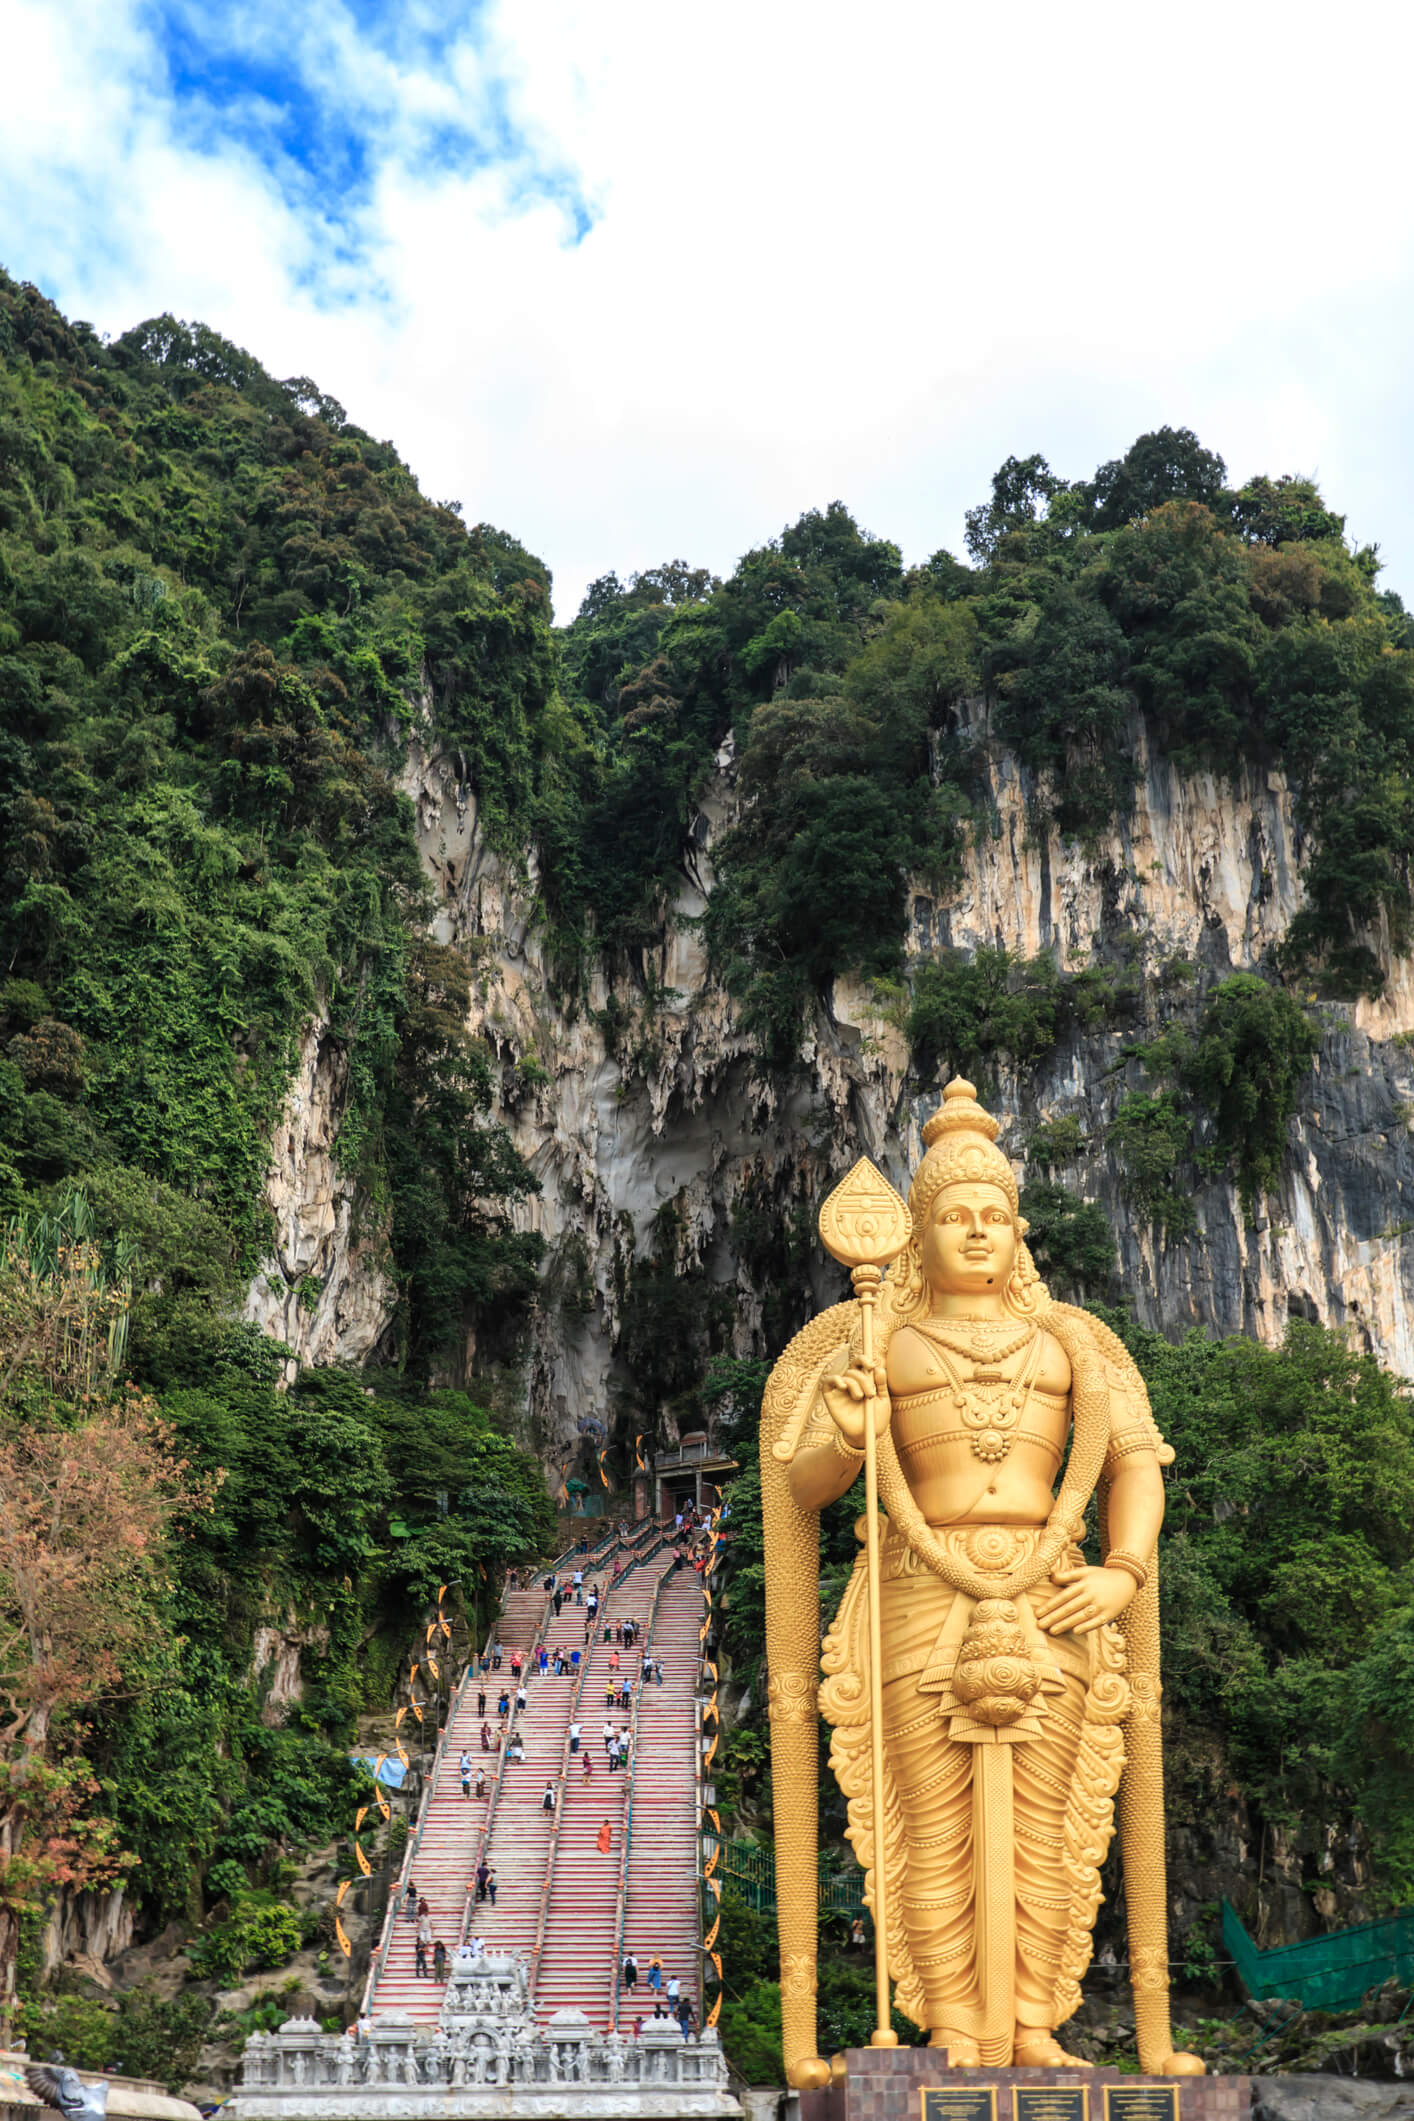 Entrance to Batu caves with the statue of Murugan - things to do in Kuala Lumpur